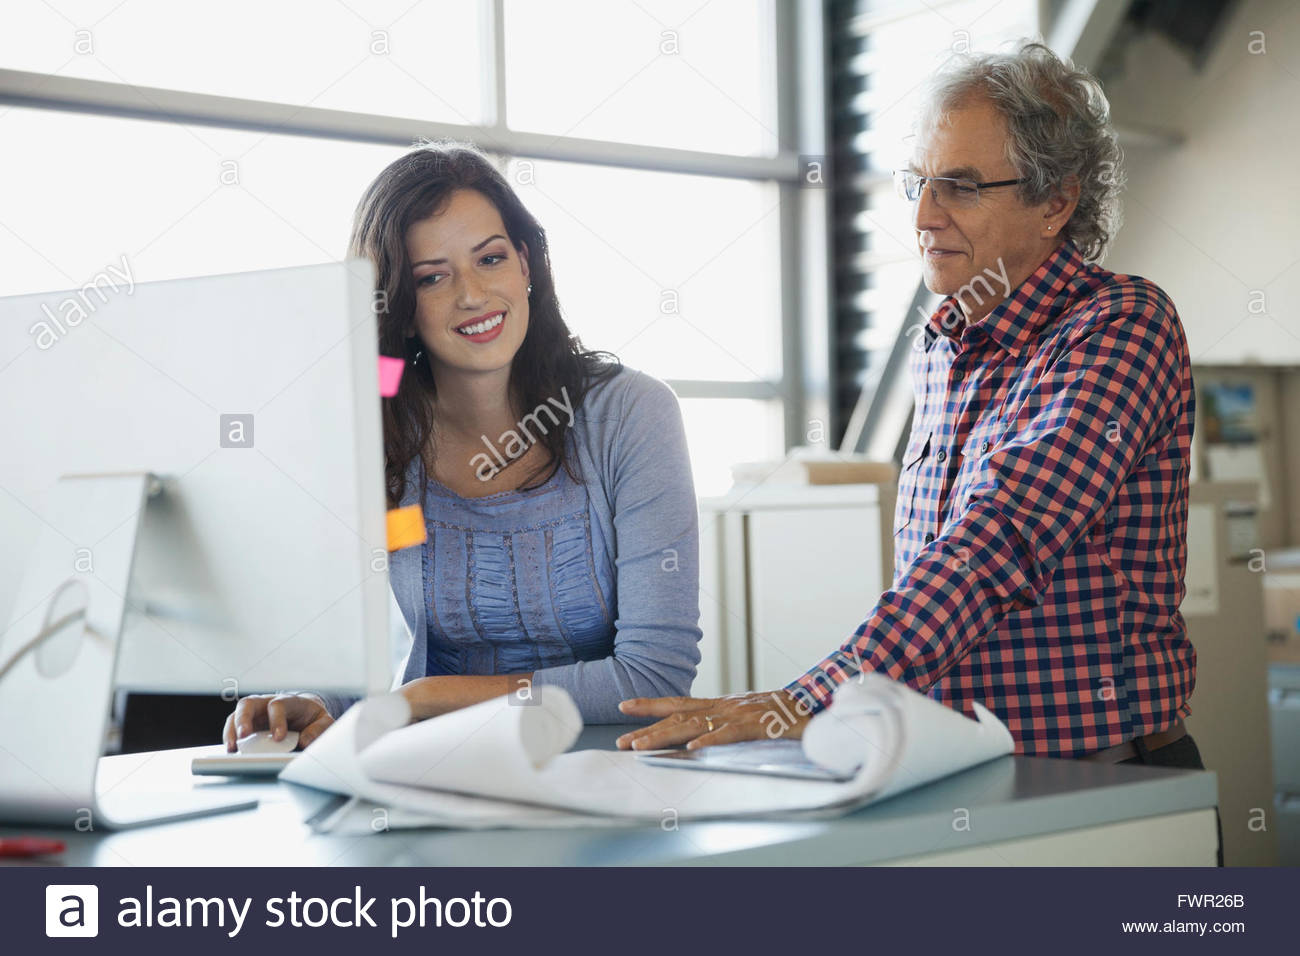 Business computer in office Photo Stock